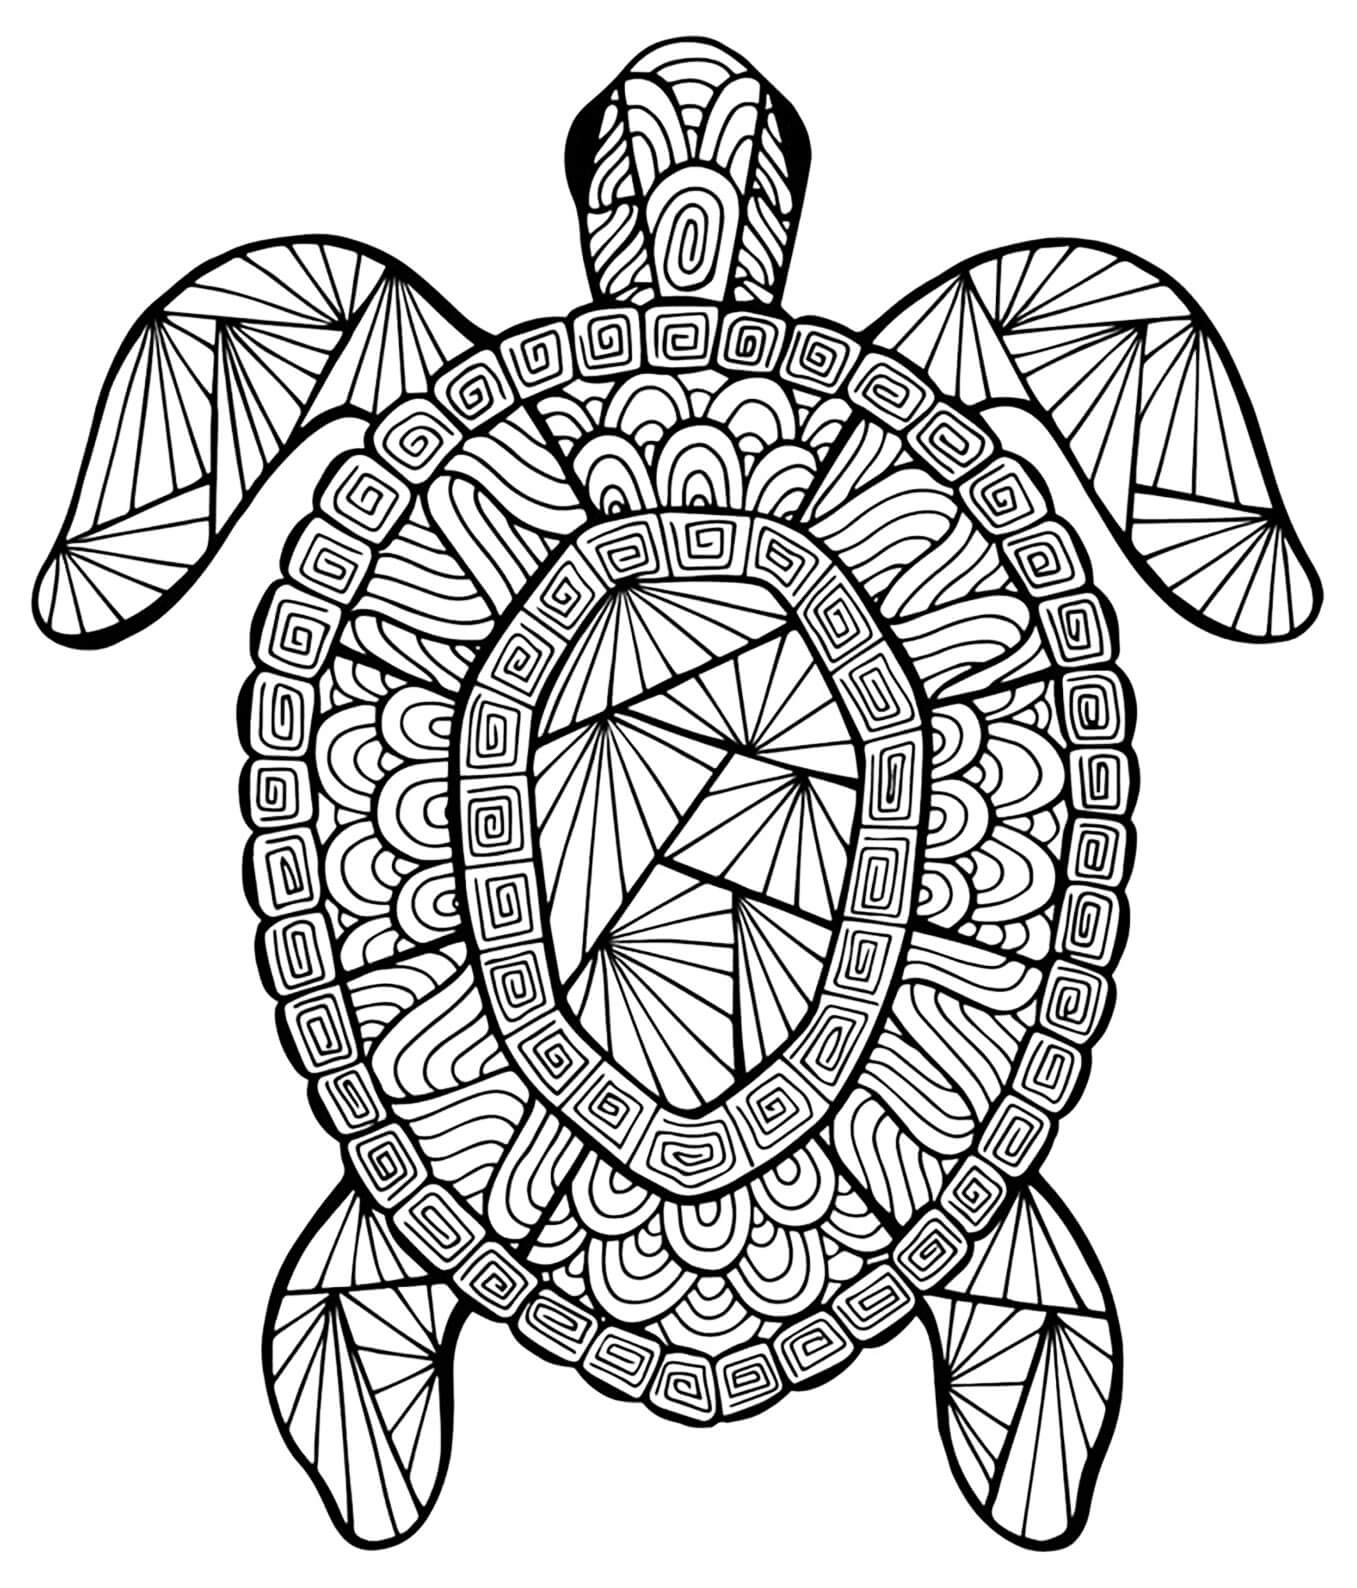 challenging coloring sheets printable difficult coloring pages coloring home sheets challenging coloring 1 1